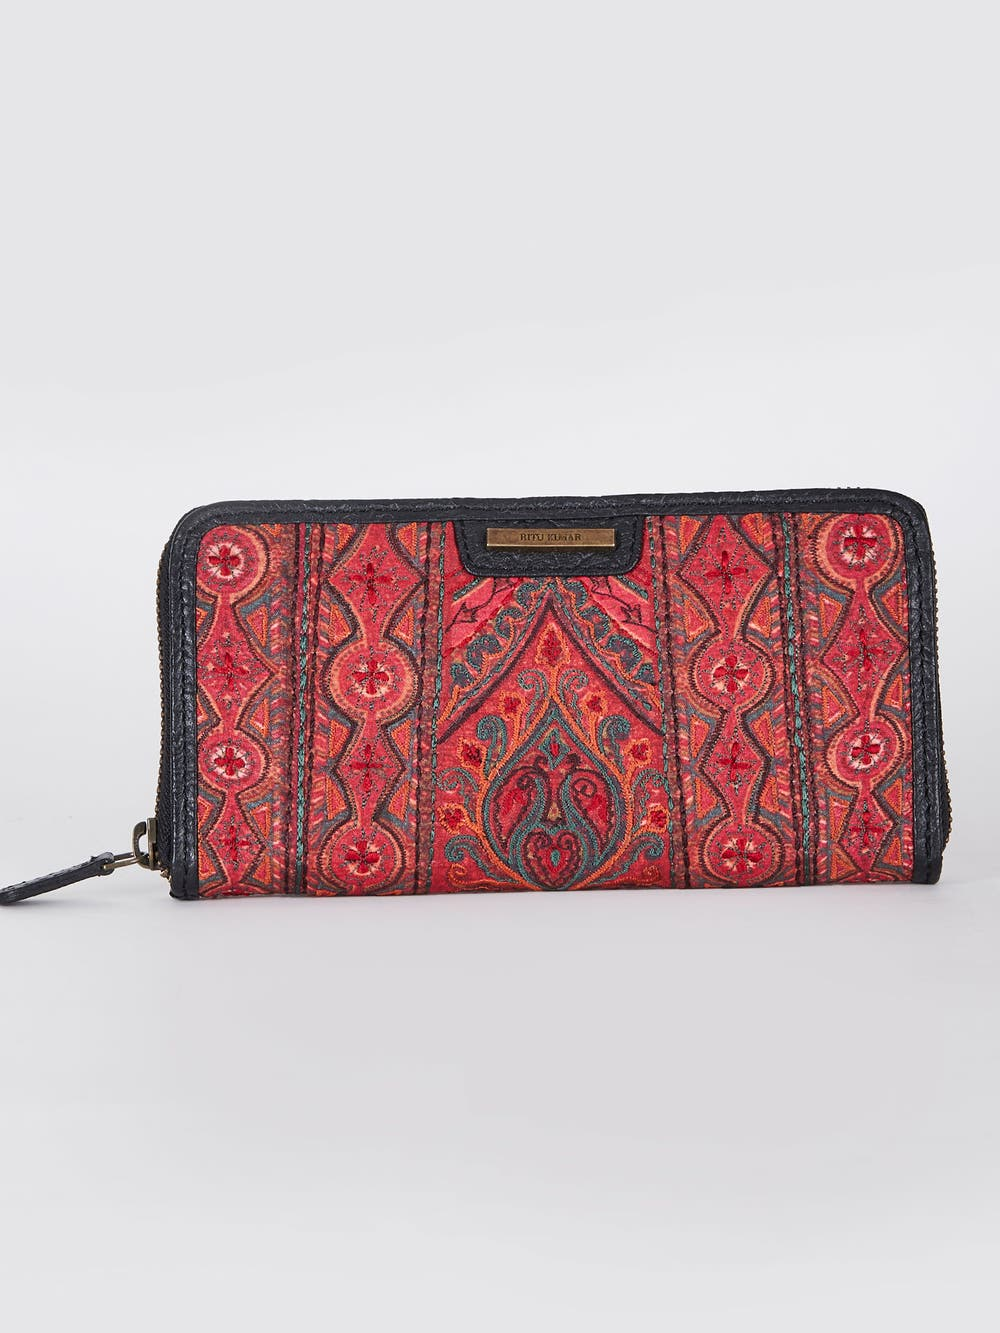 Black & Maroon Embroidered Leather Wallet